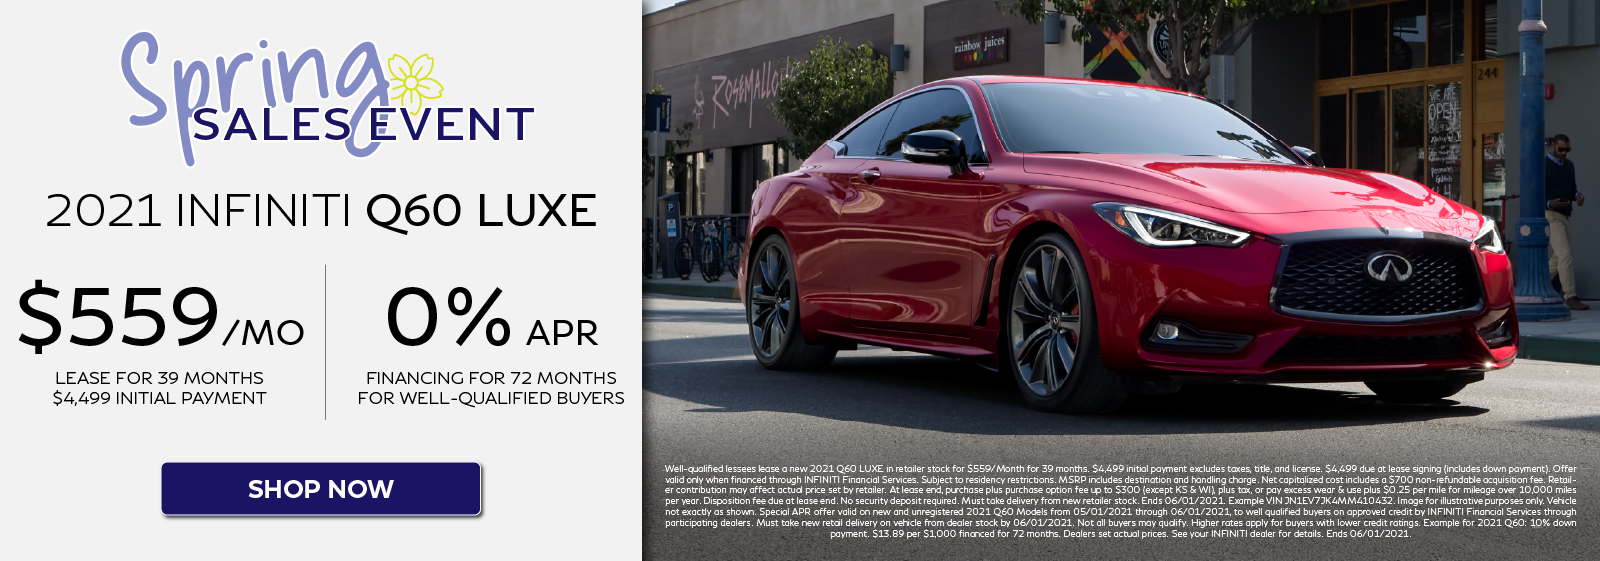 2021 Q60 LUXE Lease and APR Offers. Click to shop now.